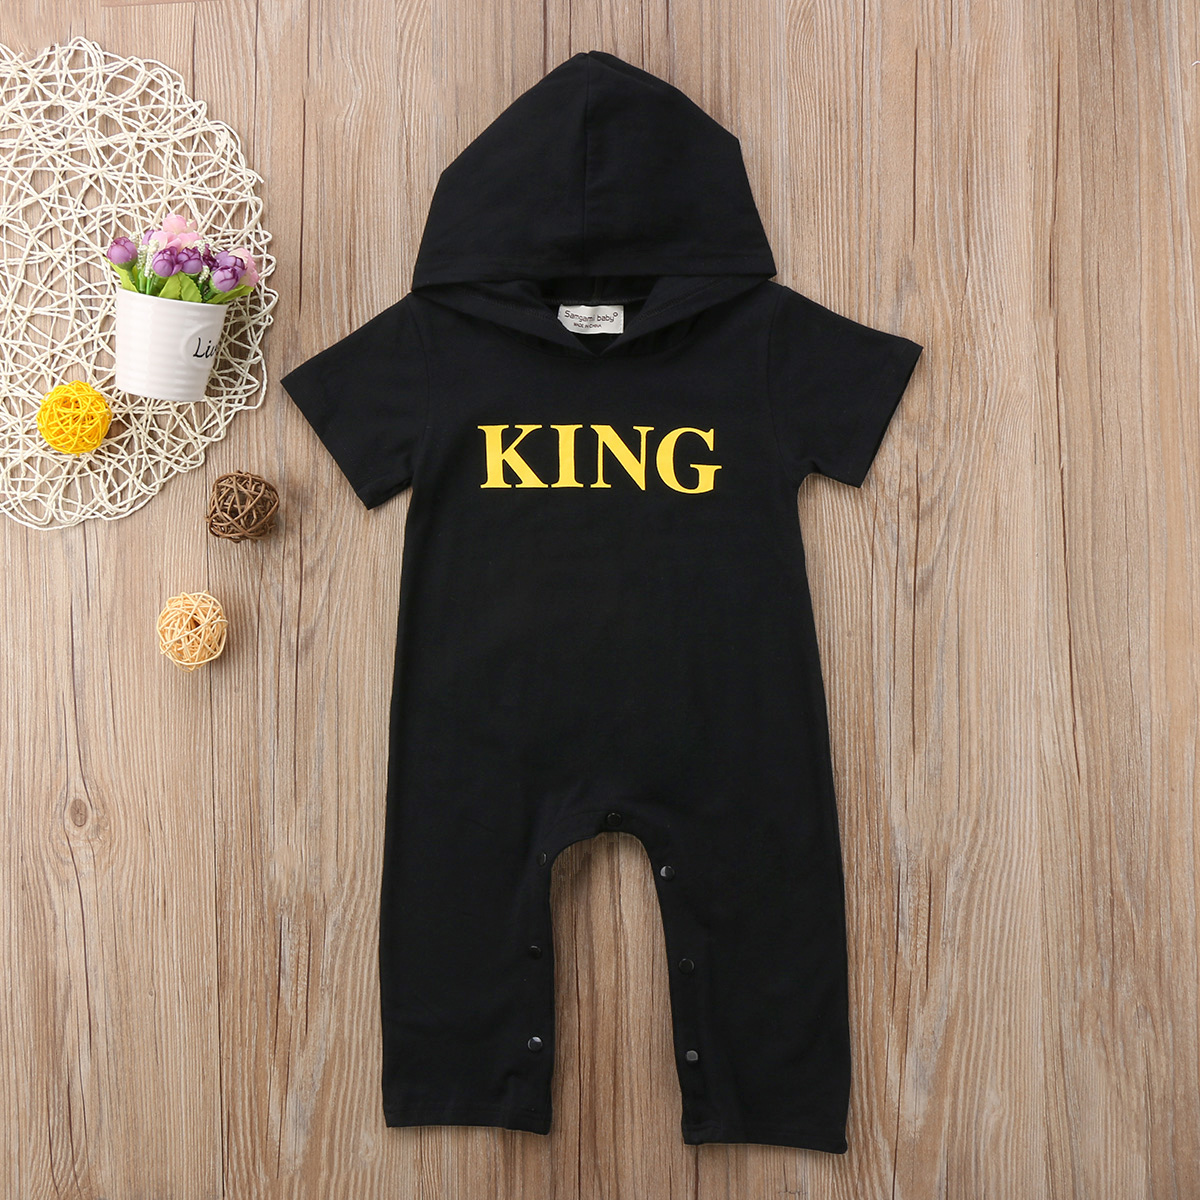 New Newborn Baby Kid Boys Girls Infant King Letter Rompers Jumpsuit Playsuit Hooded Short Long Sleeve Outfit Set